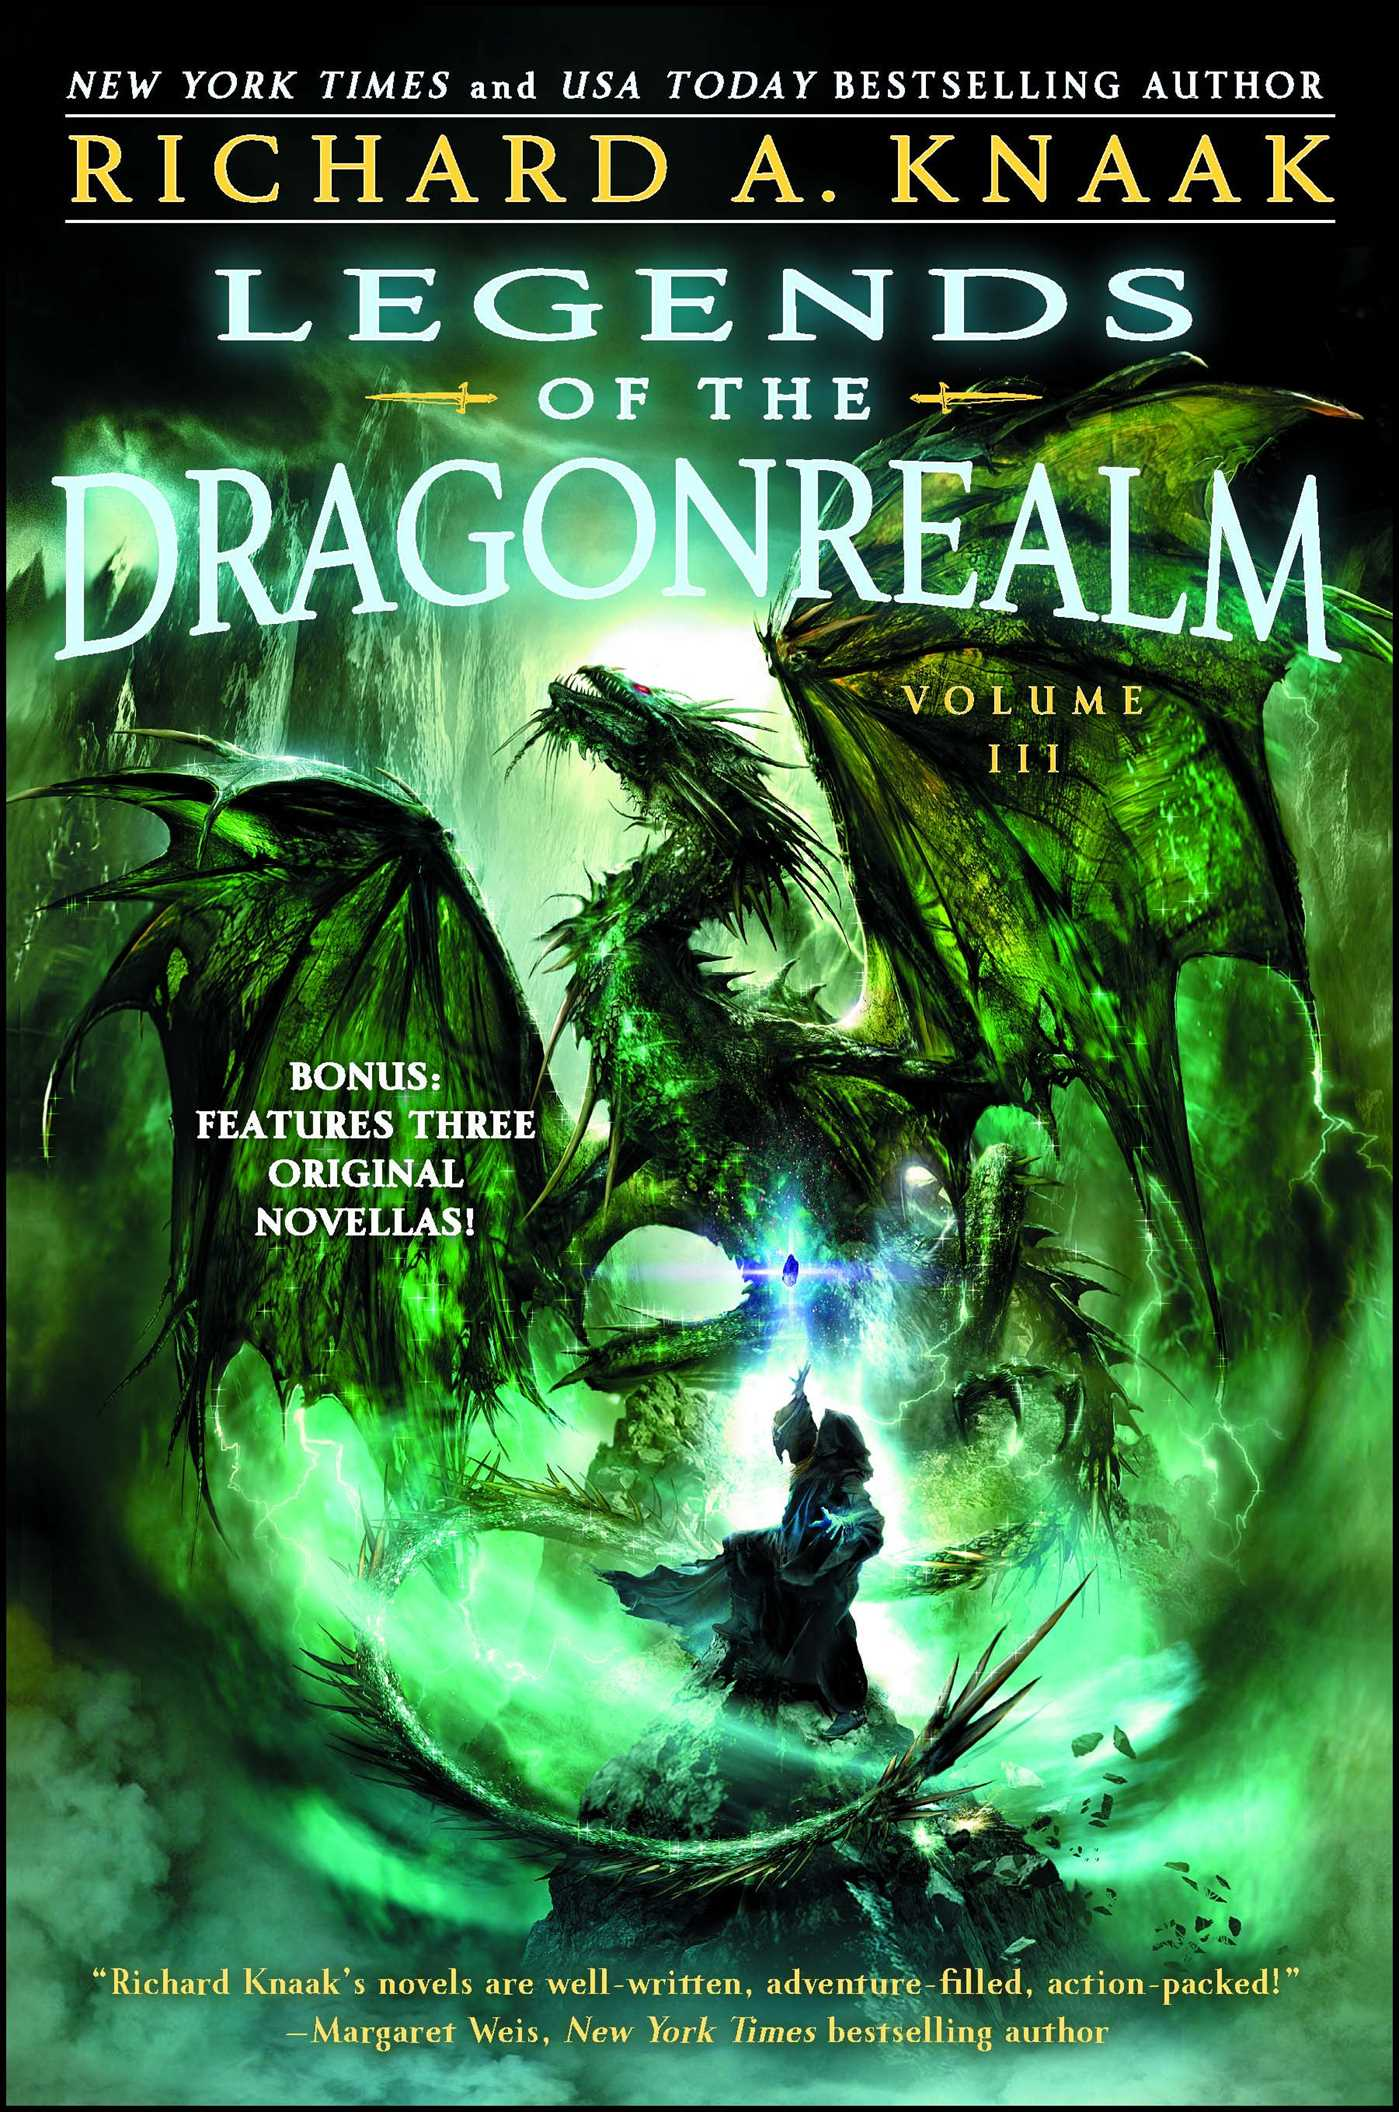 Book Cover Image (jpg): Legends Of The Dragonrealm, Vol Iii Ebook  9781451651928